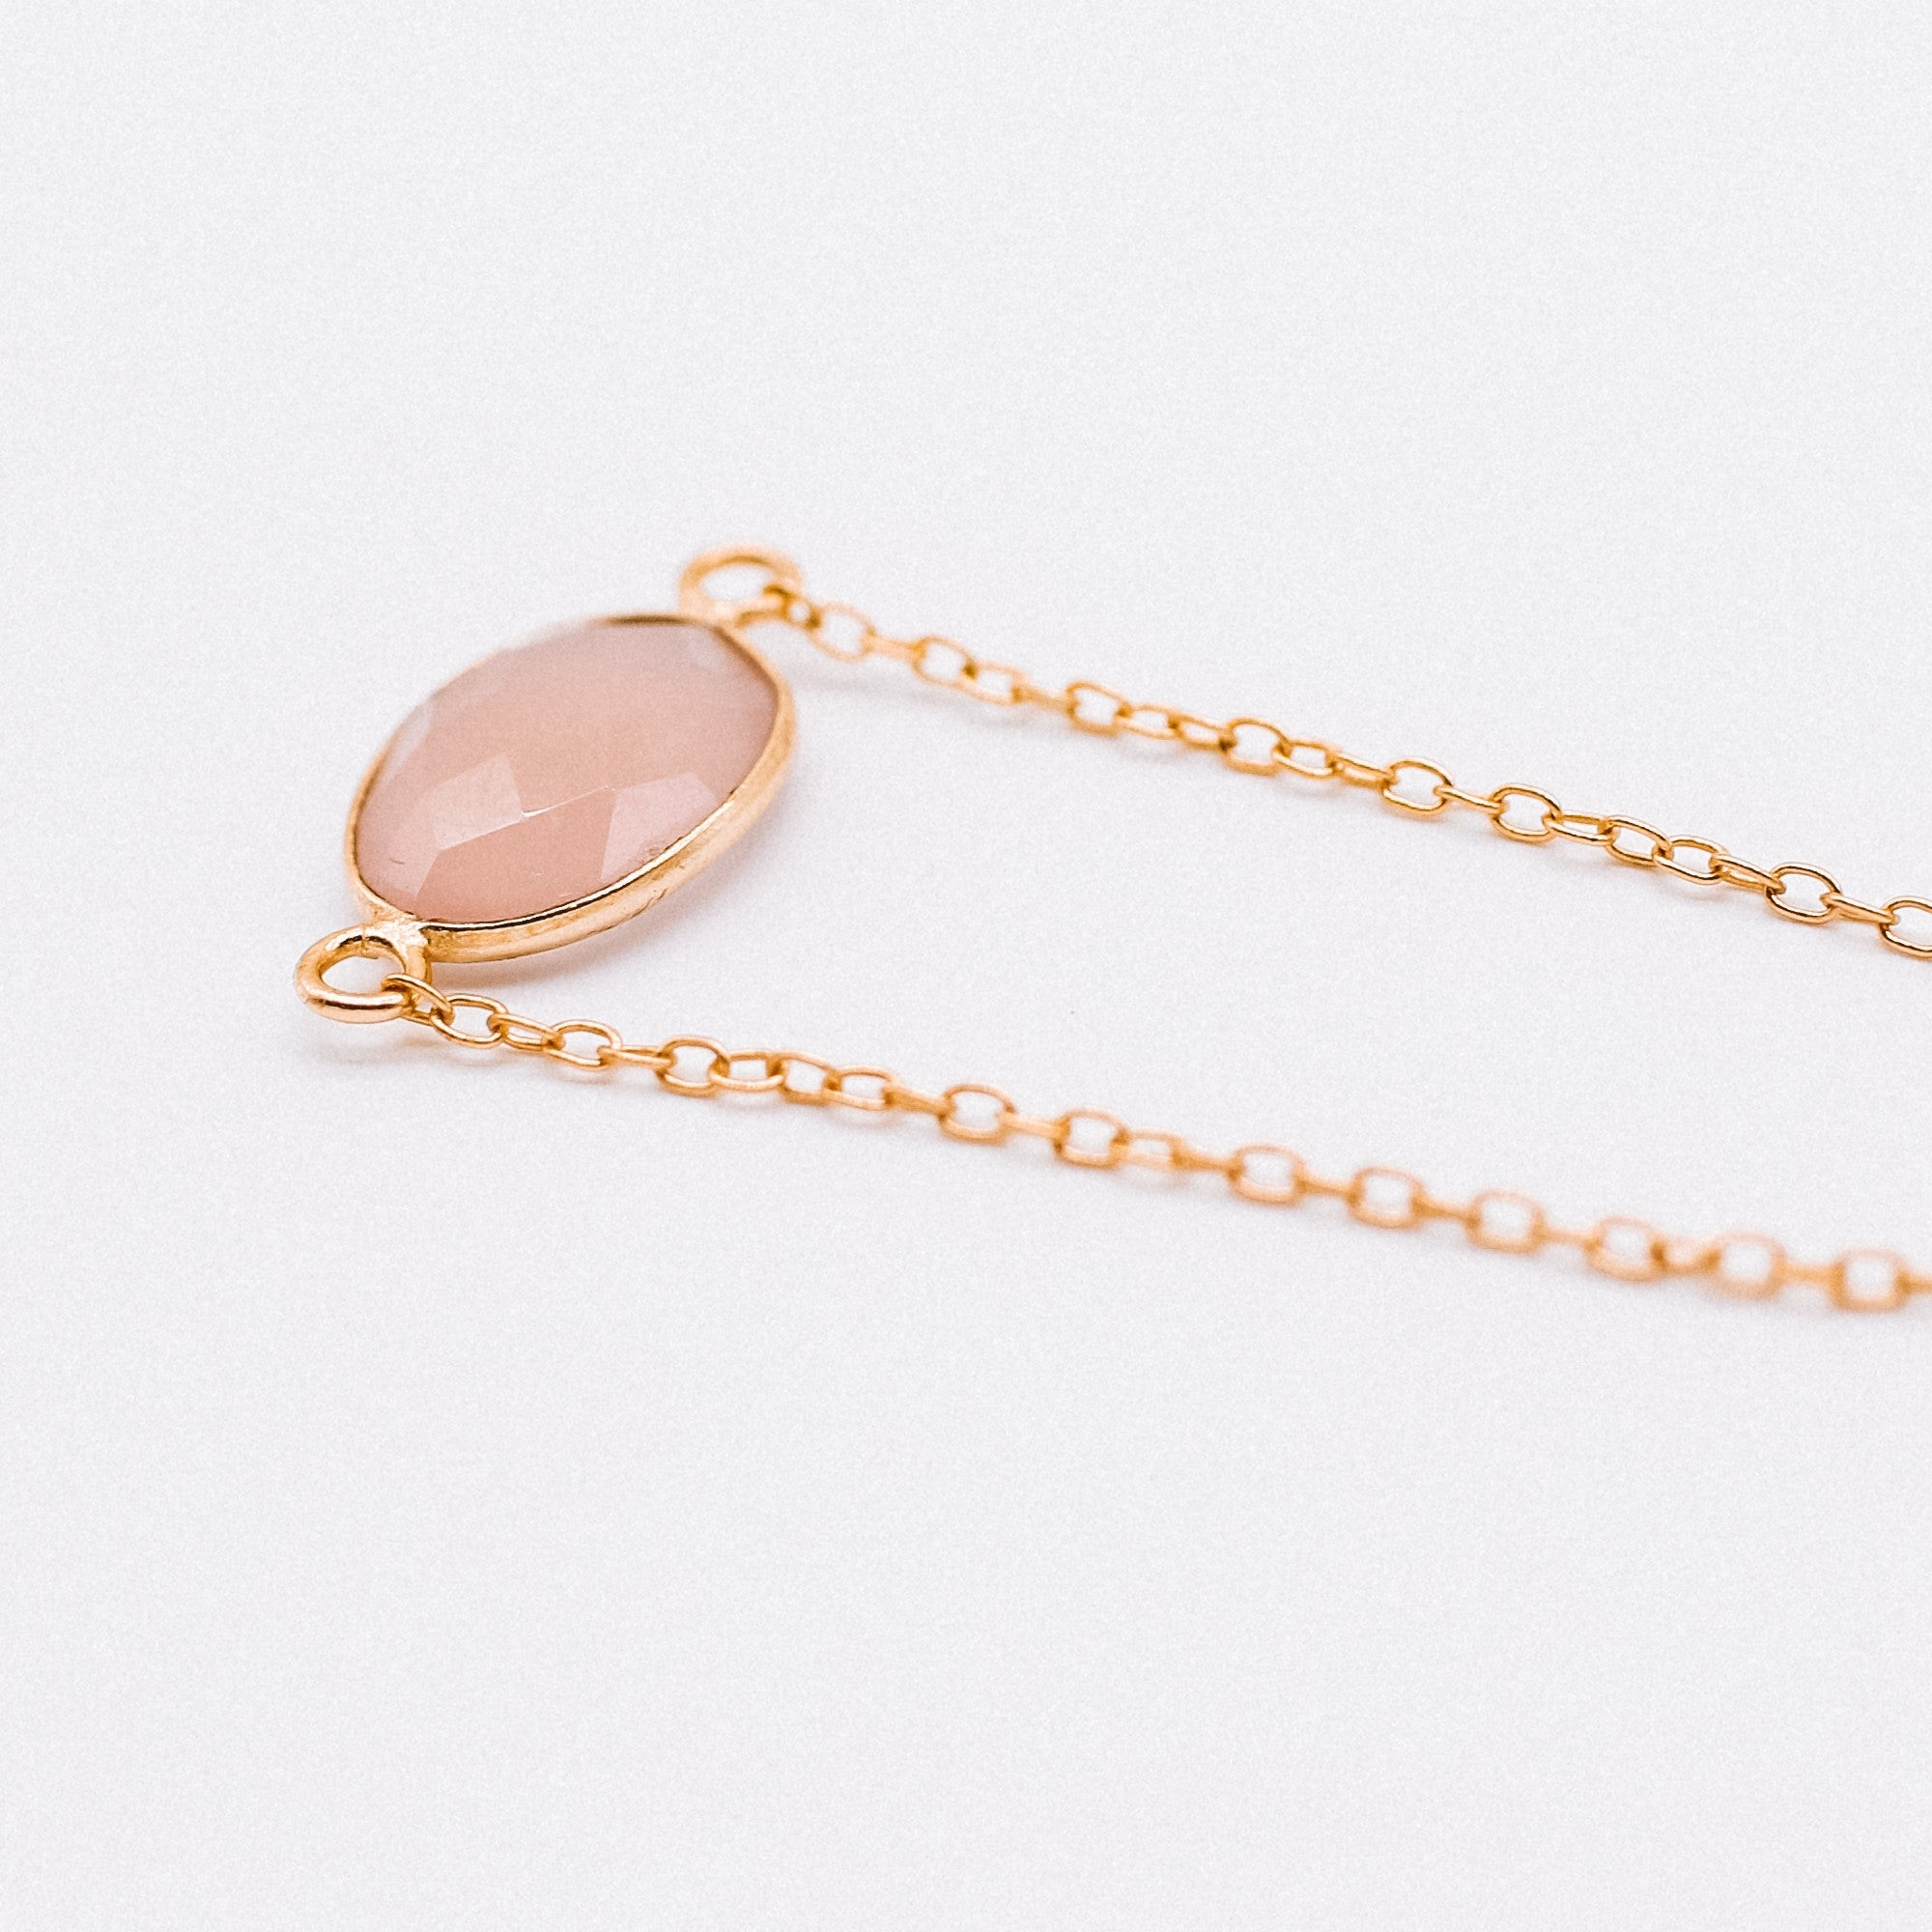 Hunter Bracelet - Rose Chalcedony - Hand crafted gold plated Katy Valentine - Shop with Sparkle & The Sinner